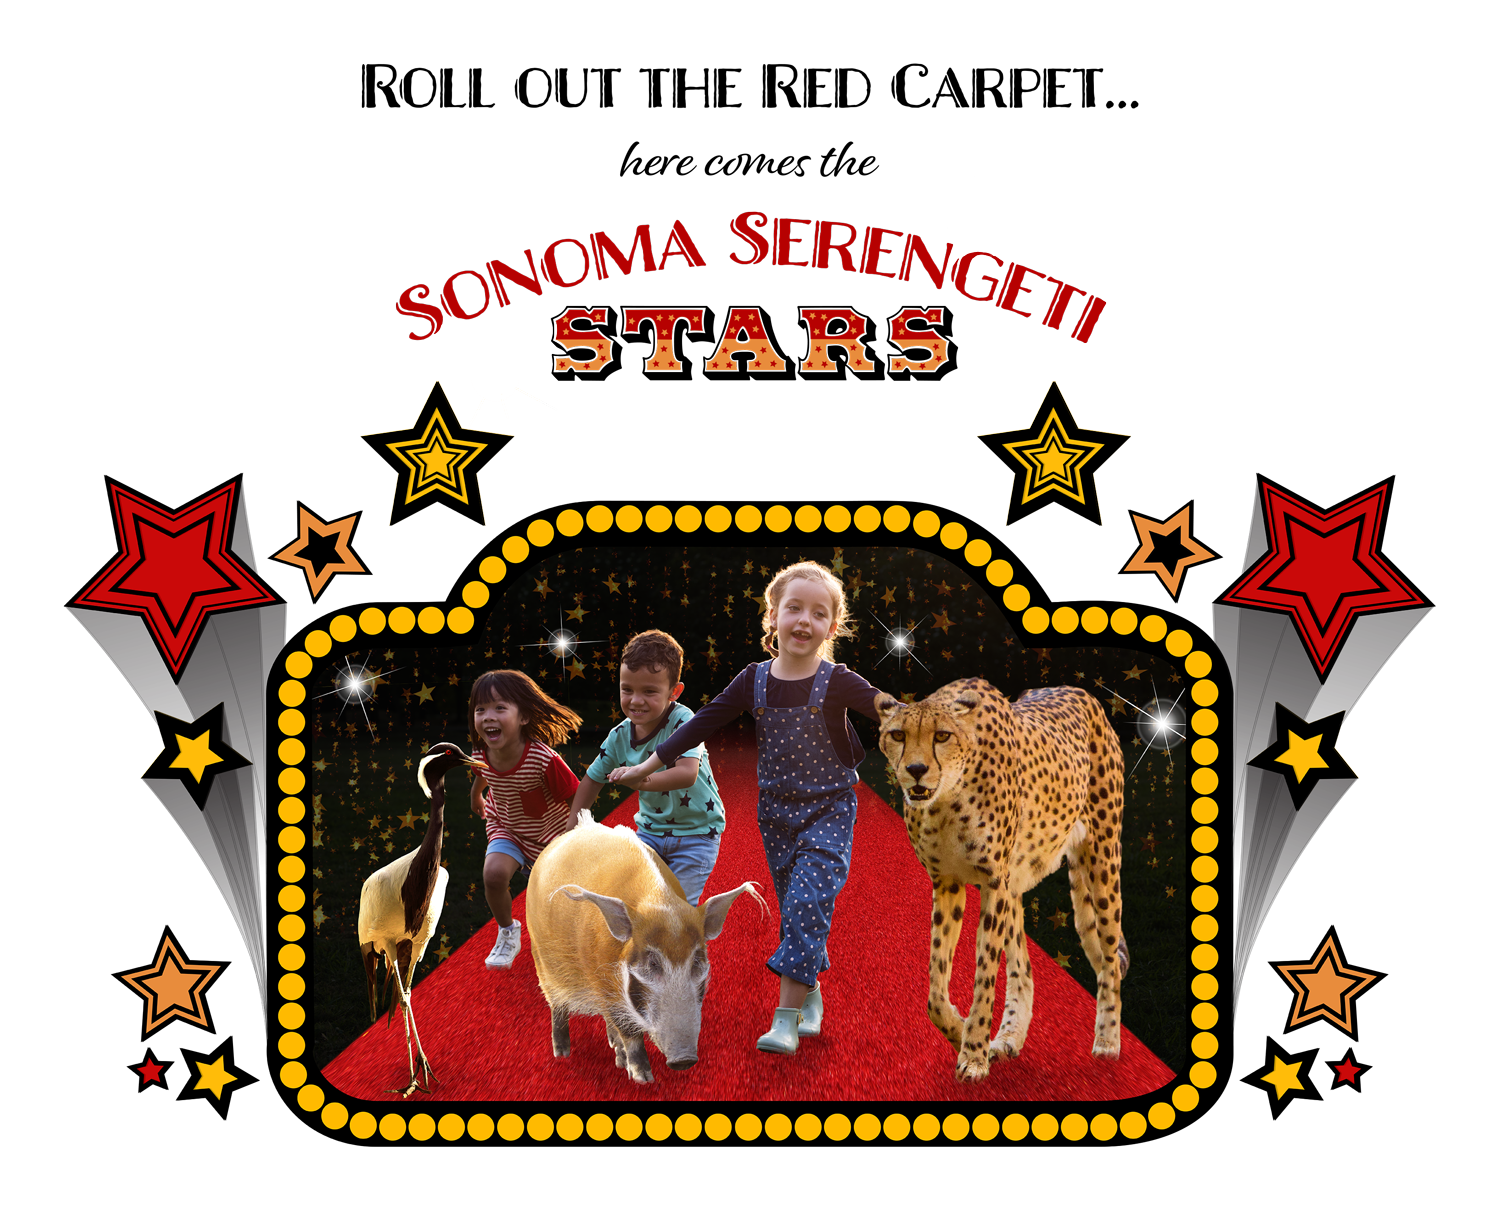 2021 Fundraiser image, Roll out the Red Carpet... here come the Sonoma Serengeti Stars